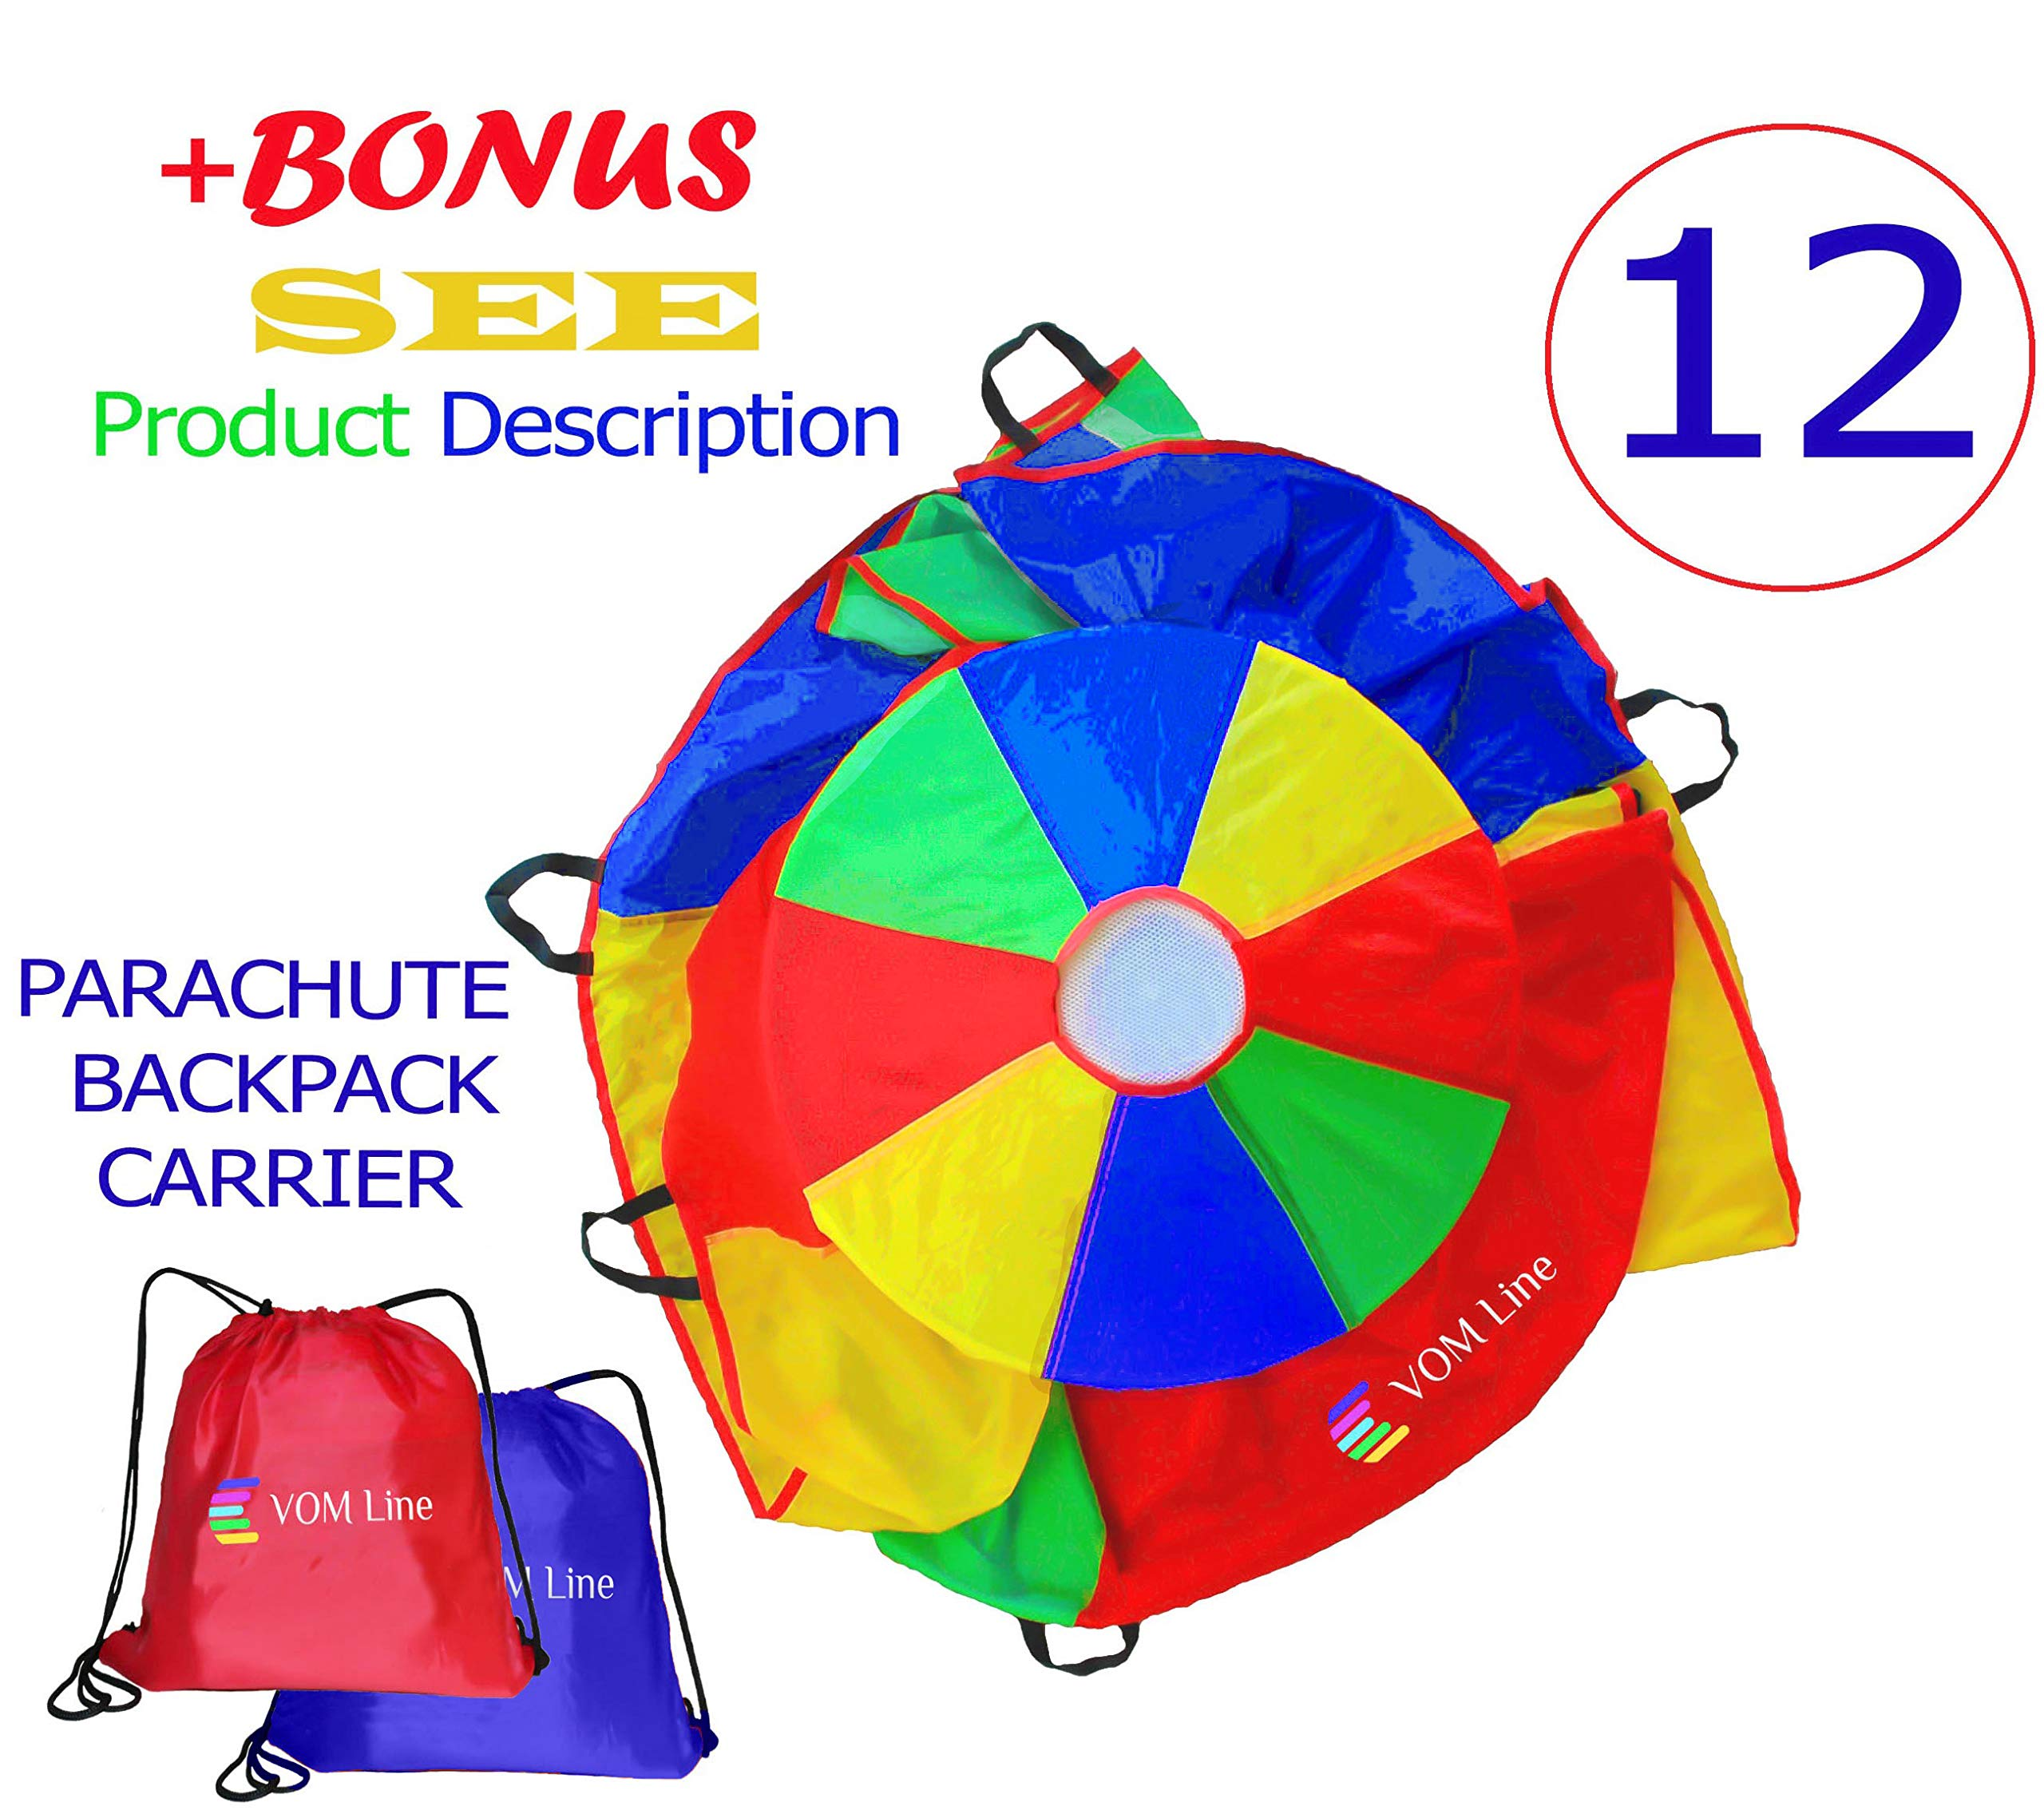 VOMLine Play Parachute 12 Foot for Kids with Extra Strong Smudge Resistant-Handles, Proper Selection of Matching Colors On the Basis of Experimental Color Testing, with High-Grade Stitching